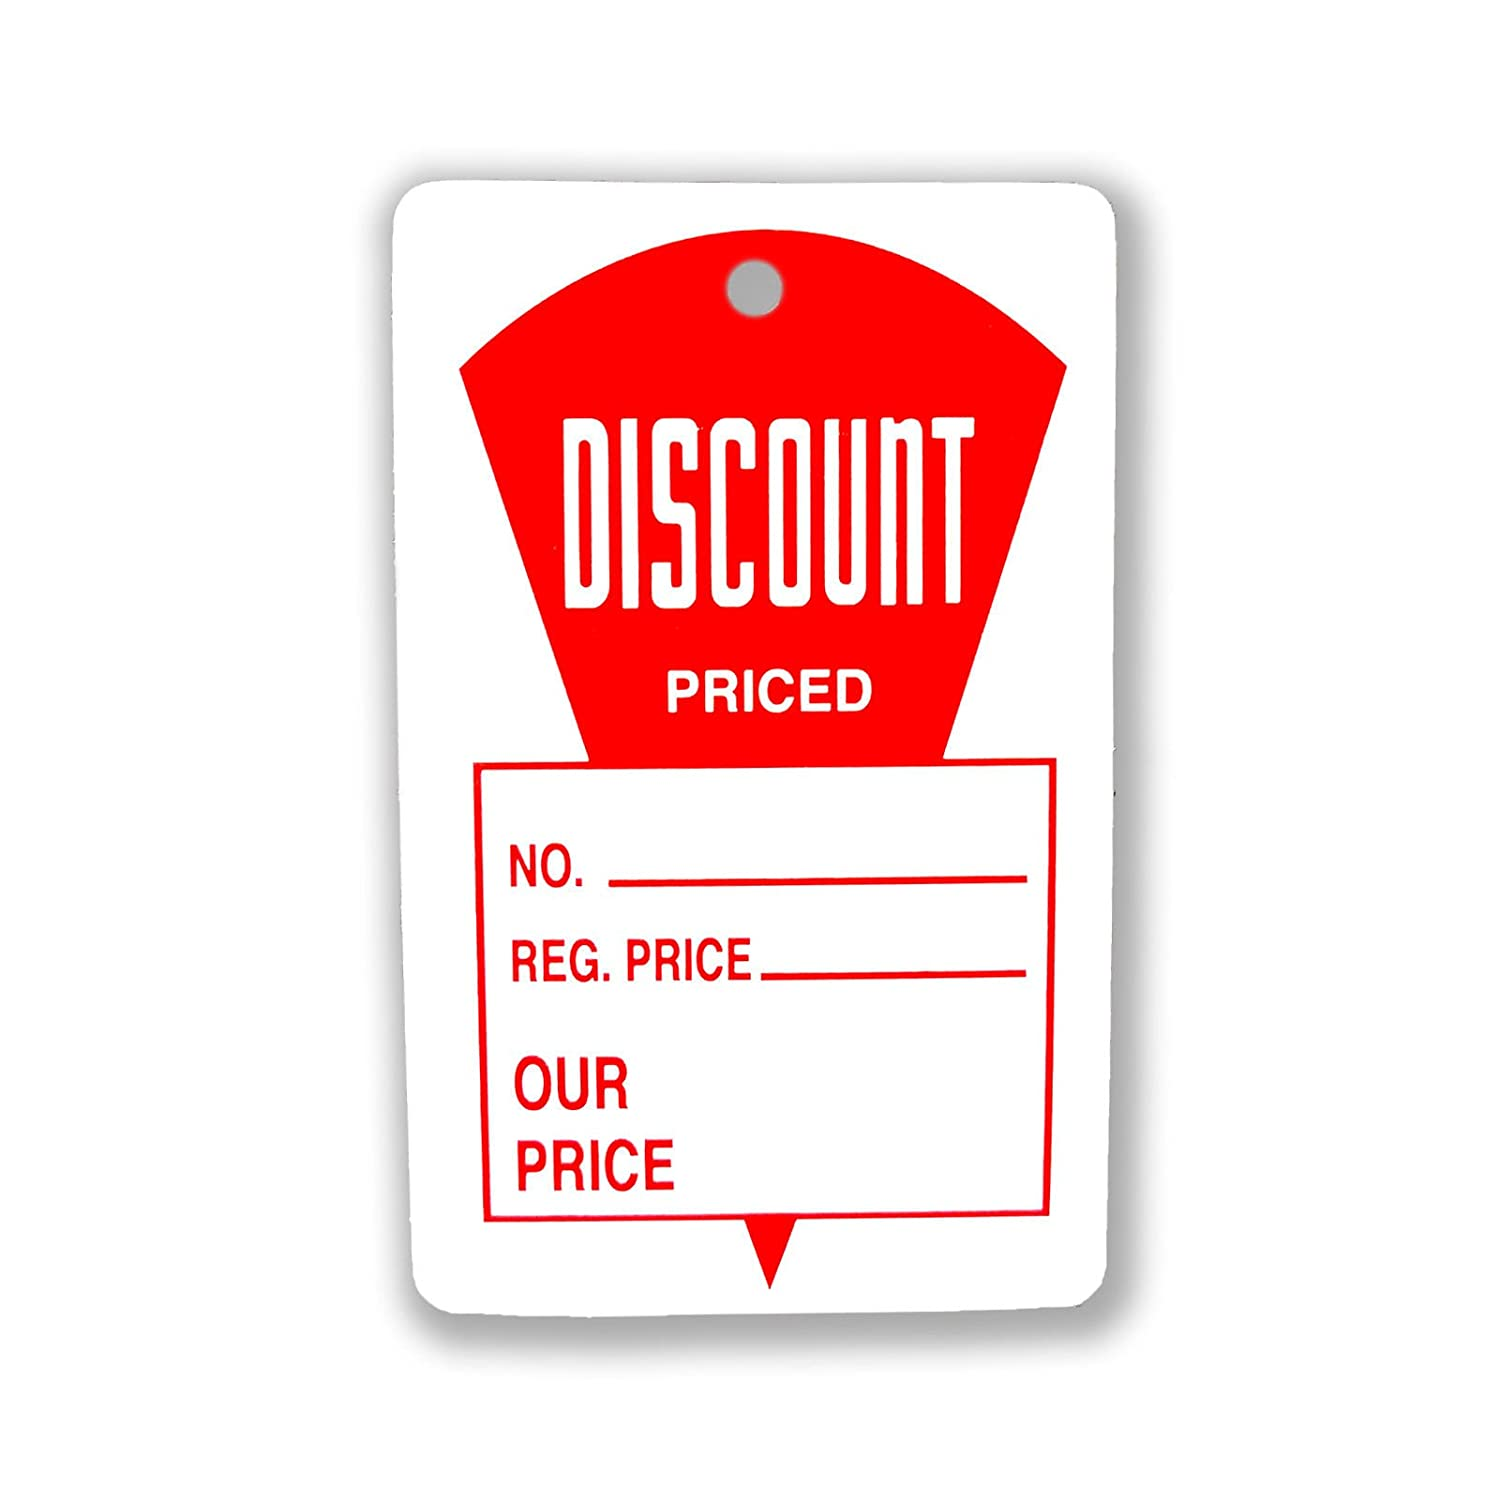 Regular Price & Our Price Tags, 1.8' W x 2.9' H Red & White Discount Priced Labels - 1000 Pack 1.8 W x 2.9 H Red & White Discount Priced Labels - 1000 Pack Store Fixtures Direct